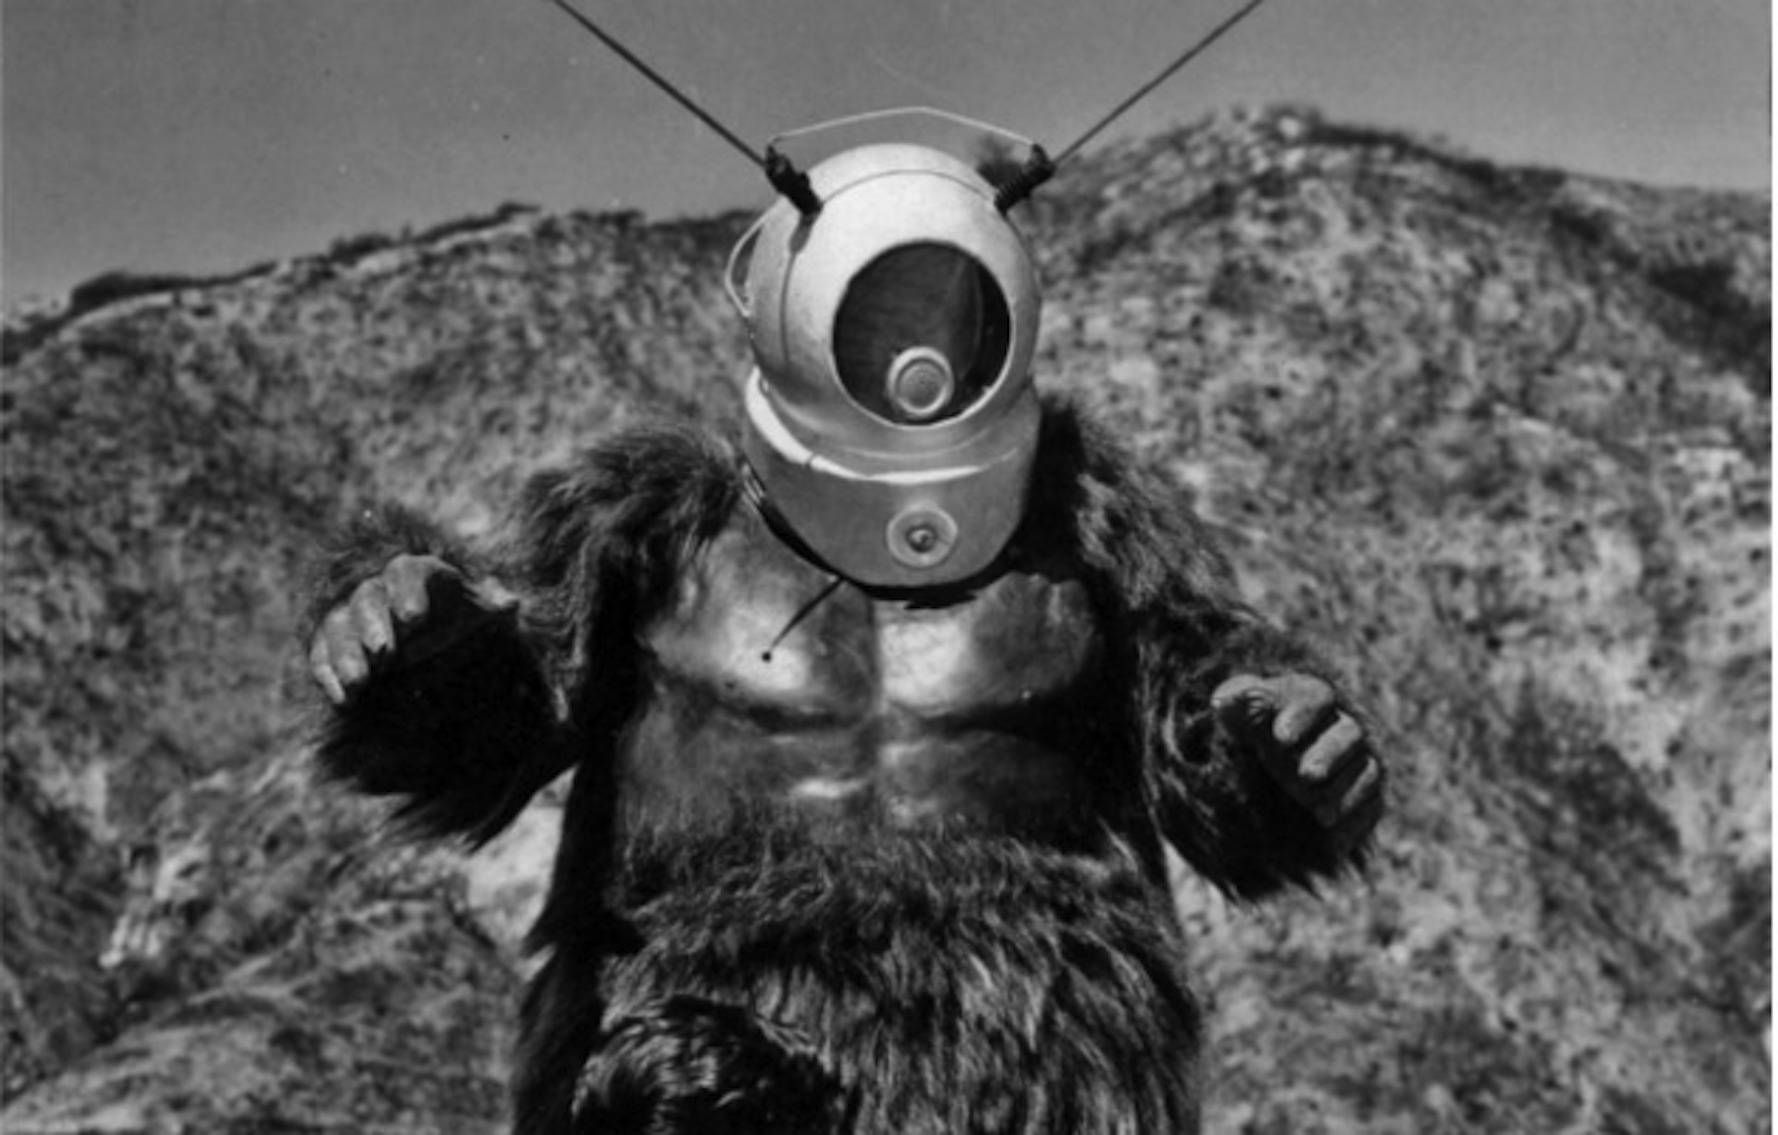 The Ro-Man (George Barrows) consisting of a gorilla suit with diving helmet in Robot Monster (1953)